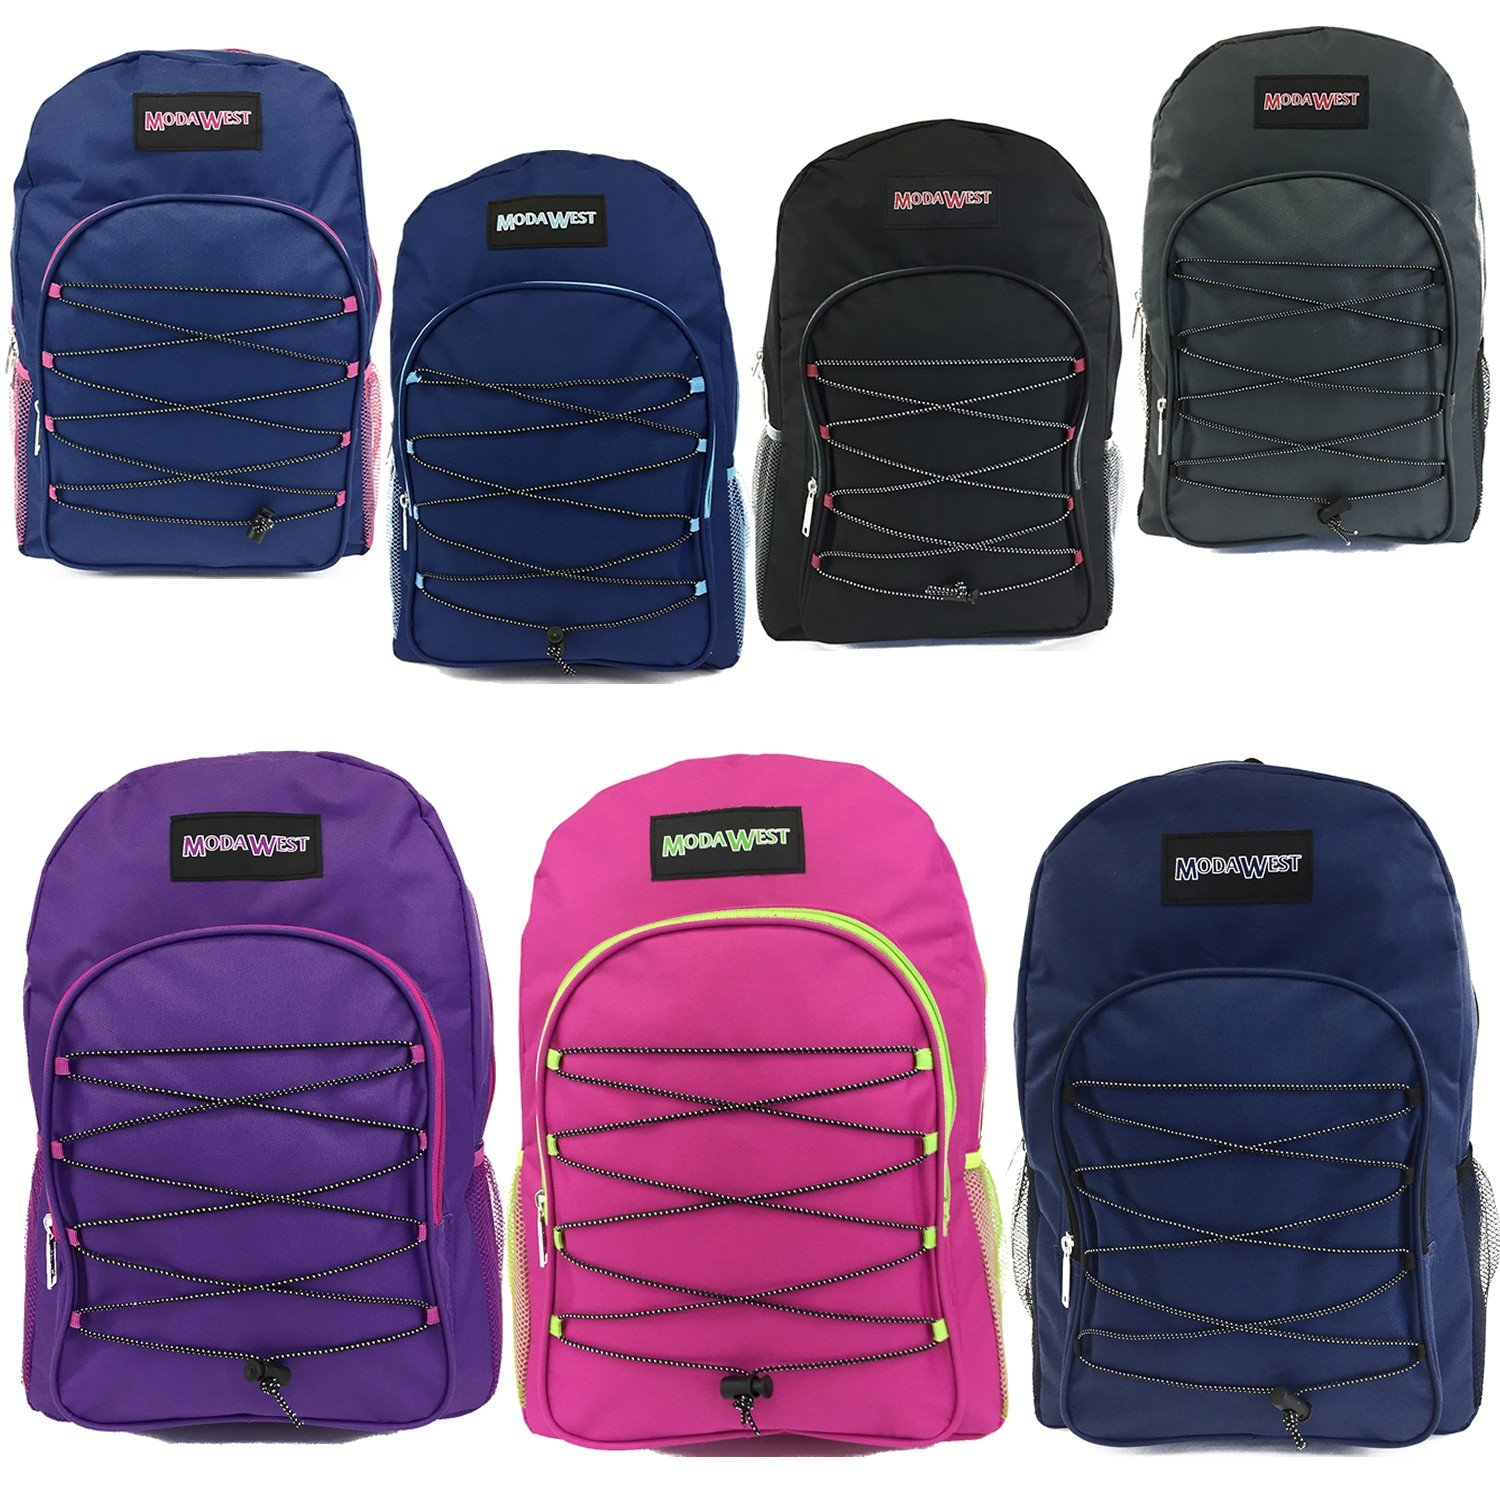 Wholesale 16'' Padded Bungee Backpacks In Assorted Colors - Case of 24